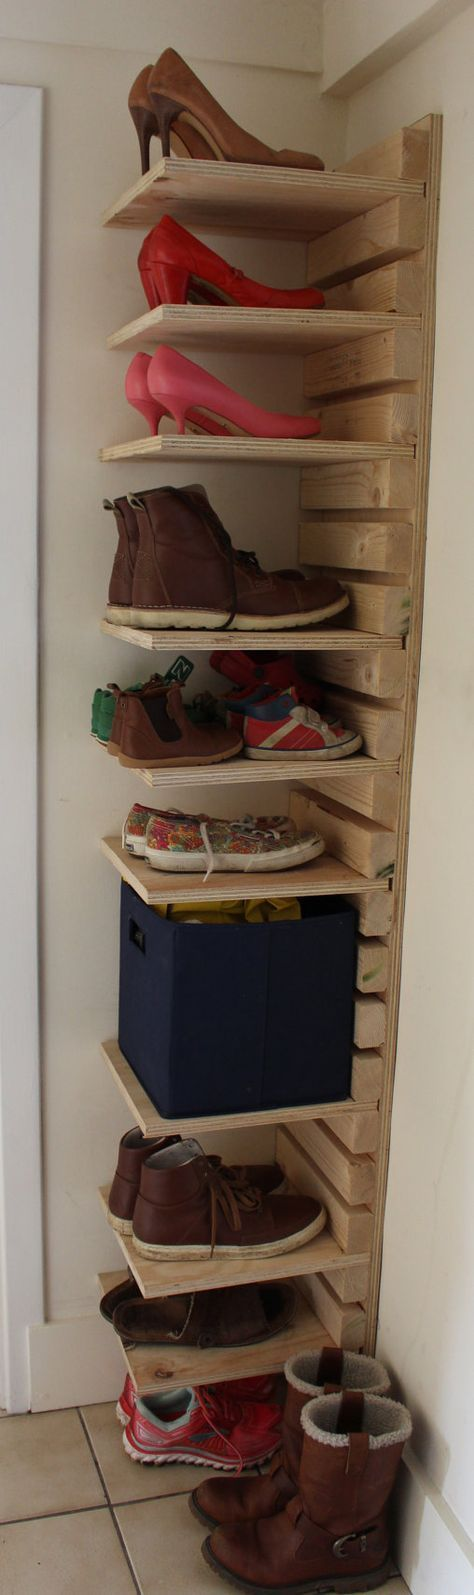 Woodworking Ideas 8